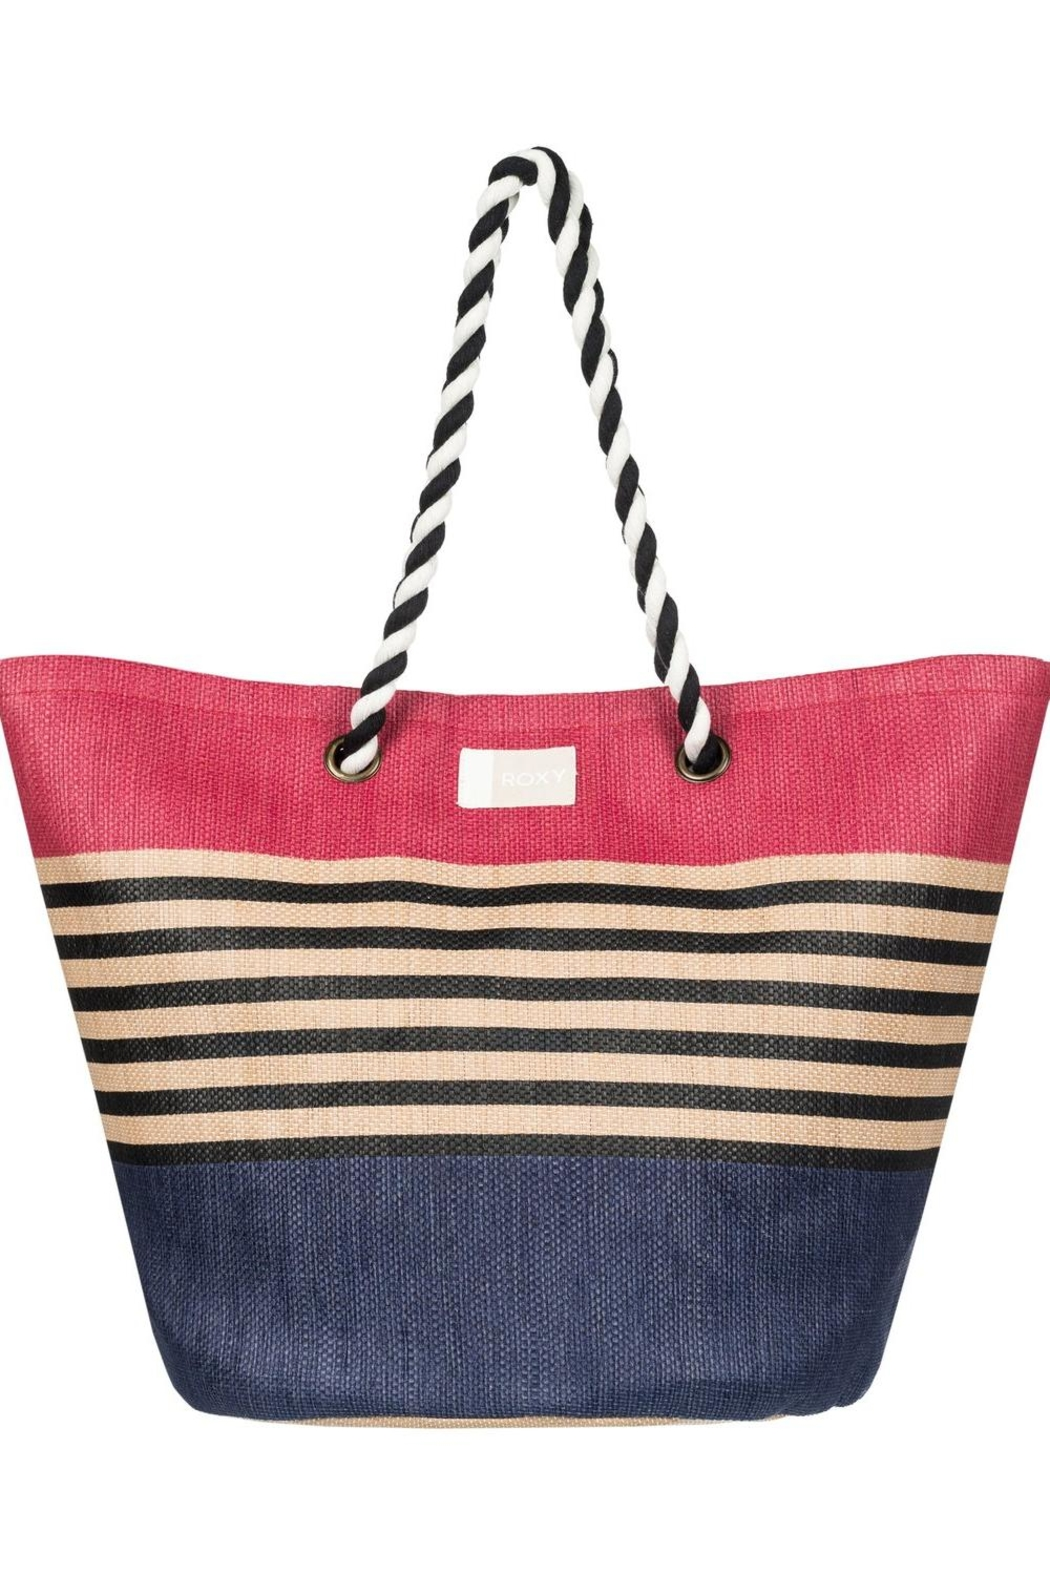 Roxy Color-Block Beach Tote - Front Cropped Image